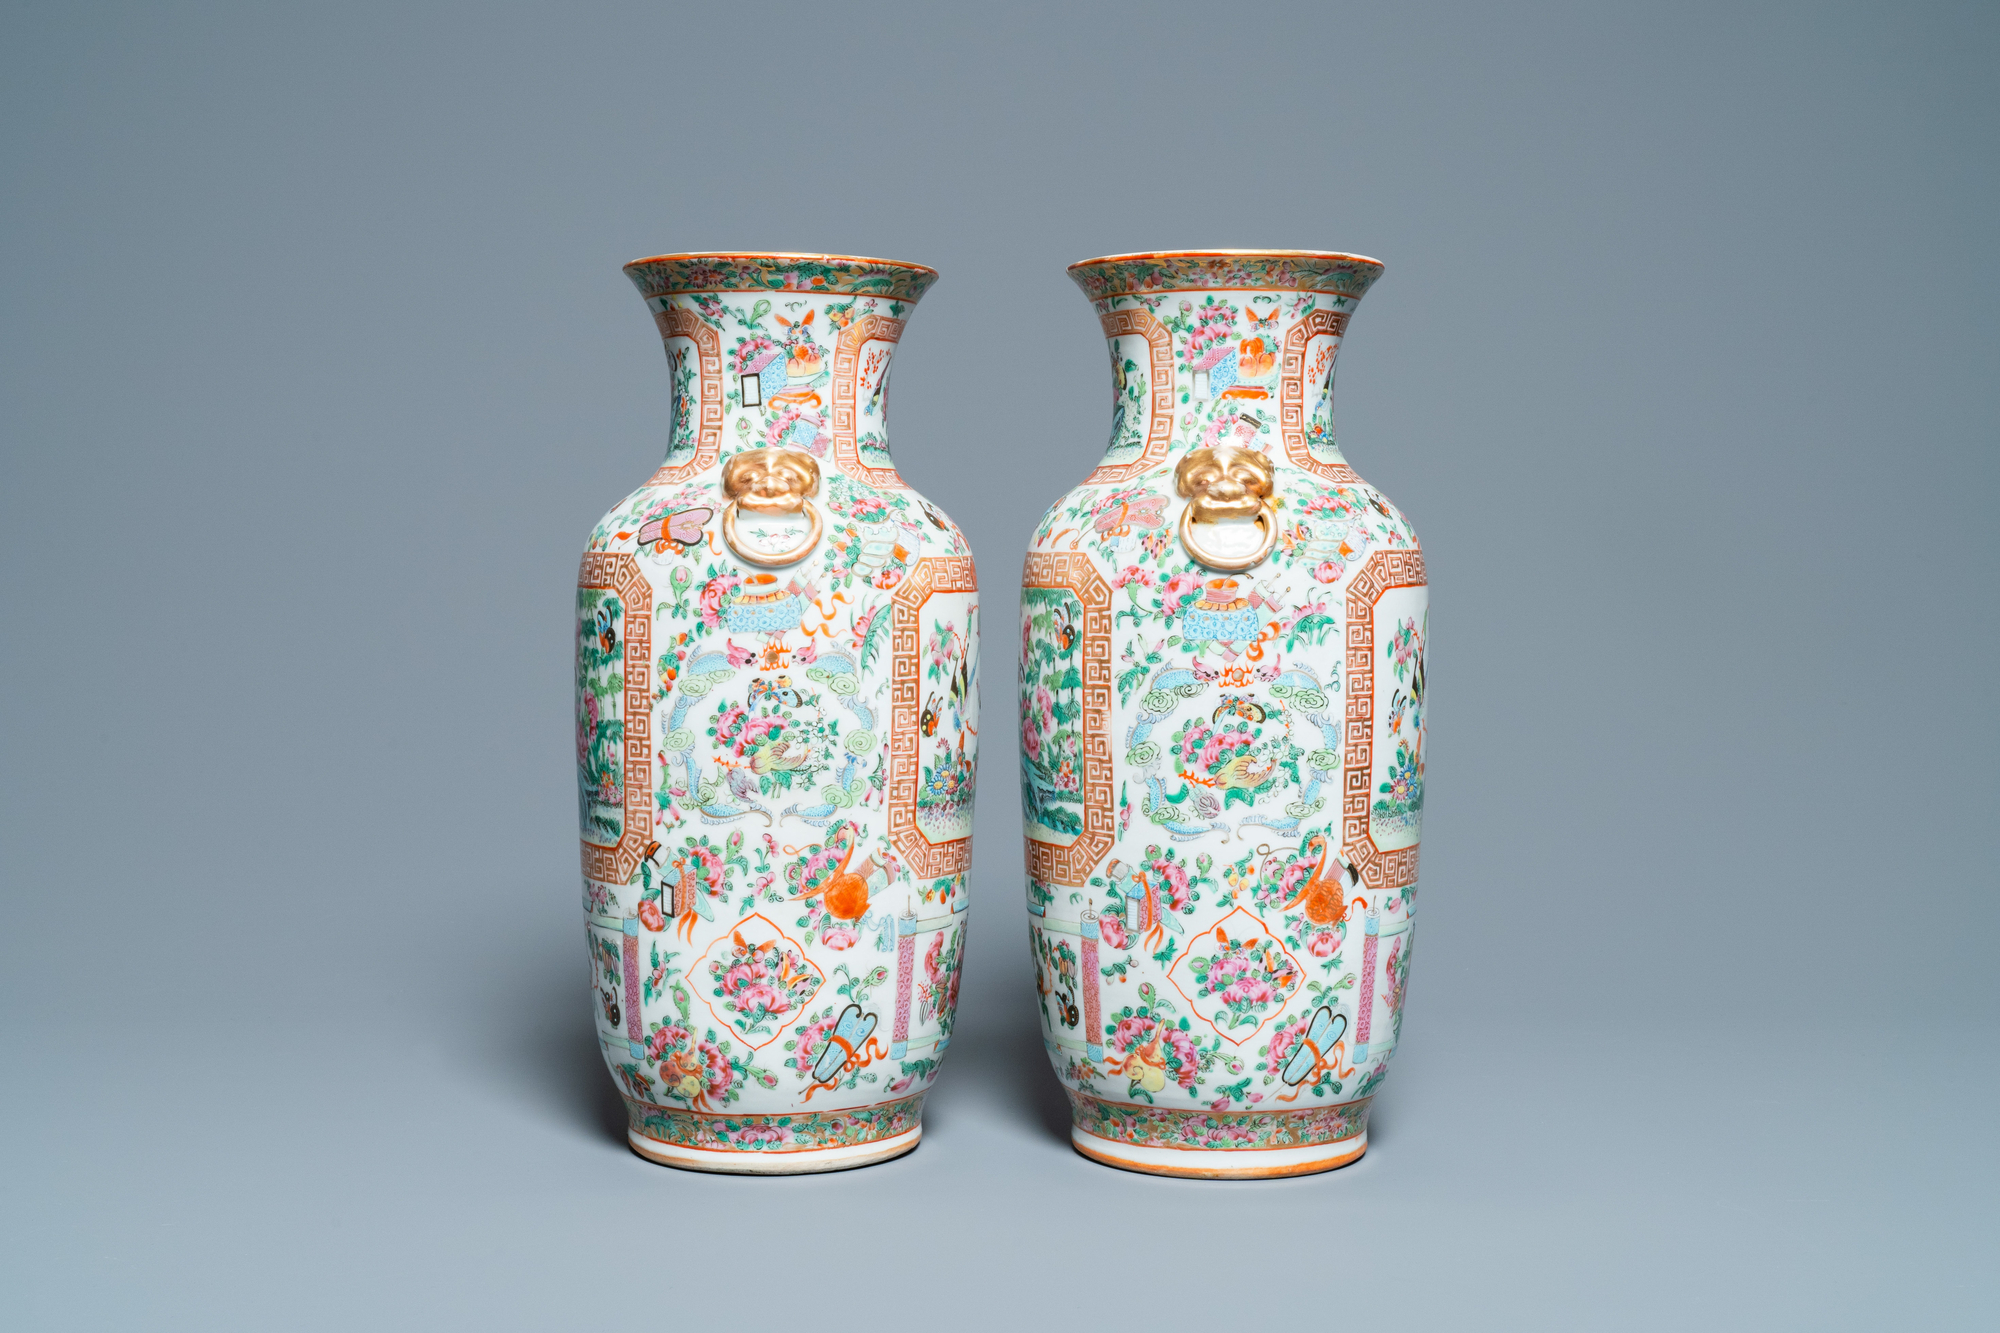 A pair of Chinese Canton famille rose vases, 19th C. - Image 4 of 6